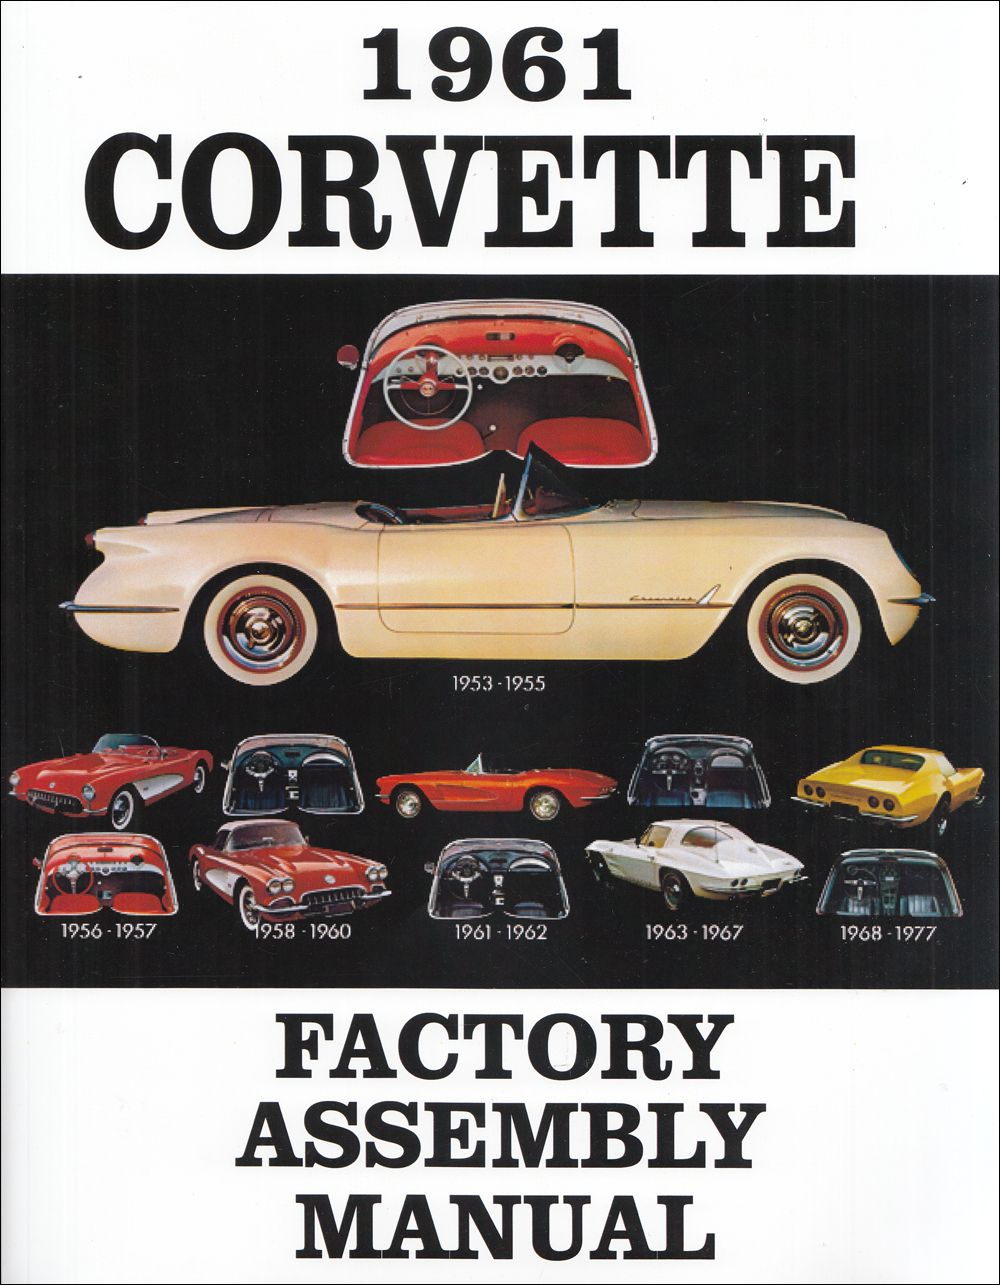 1961 Corvette Factory Assembly Manual Reprint